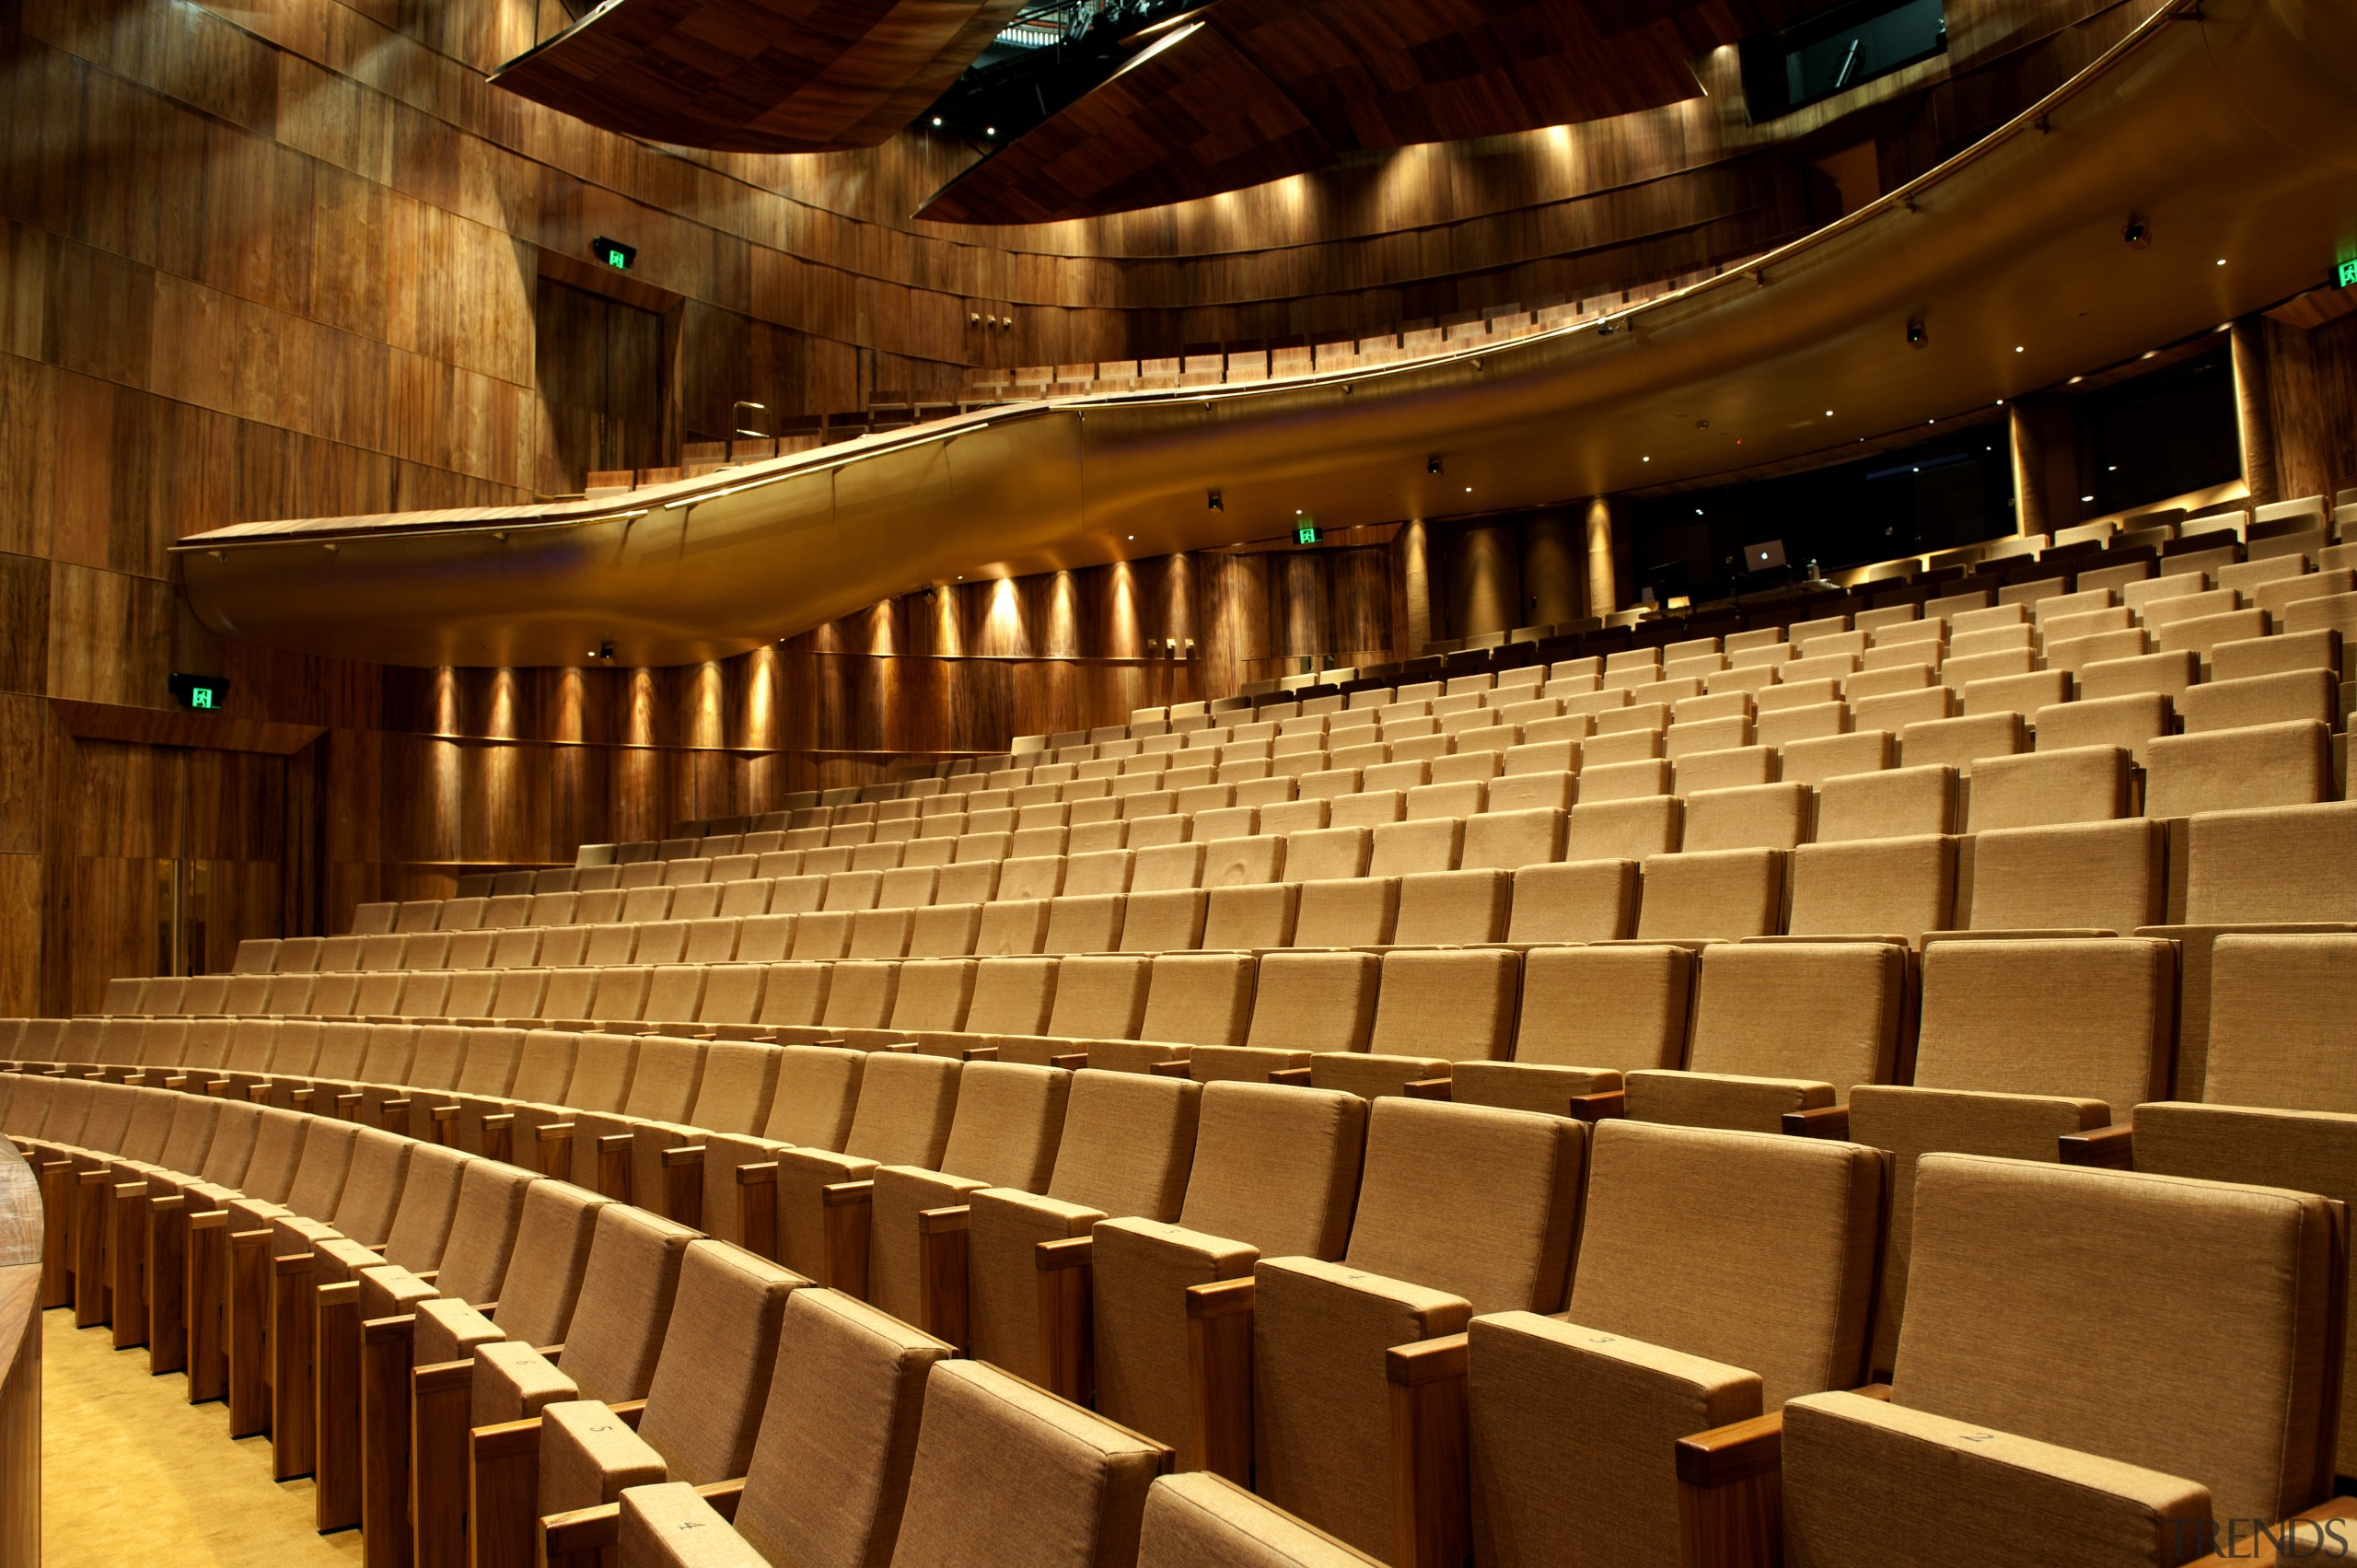 This is the Perth State Theatre, designed by auditorium, concert hall, musical instrument accessory, opera house, performing arts center, theatre, brown, red